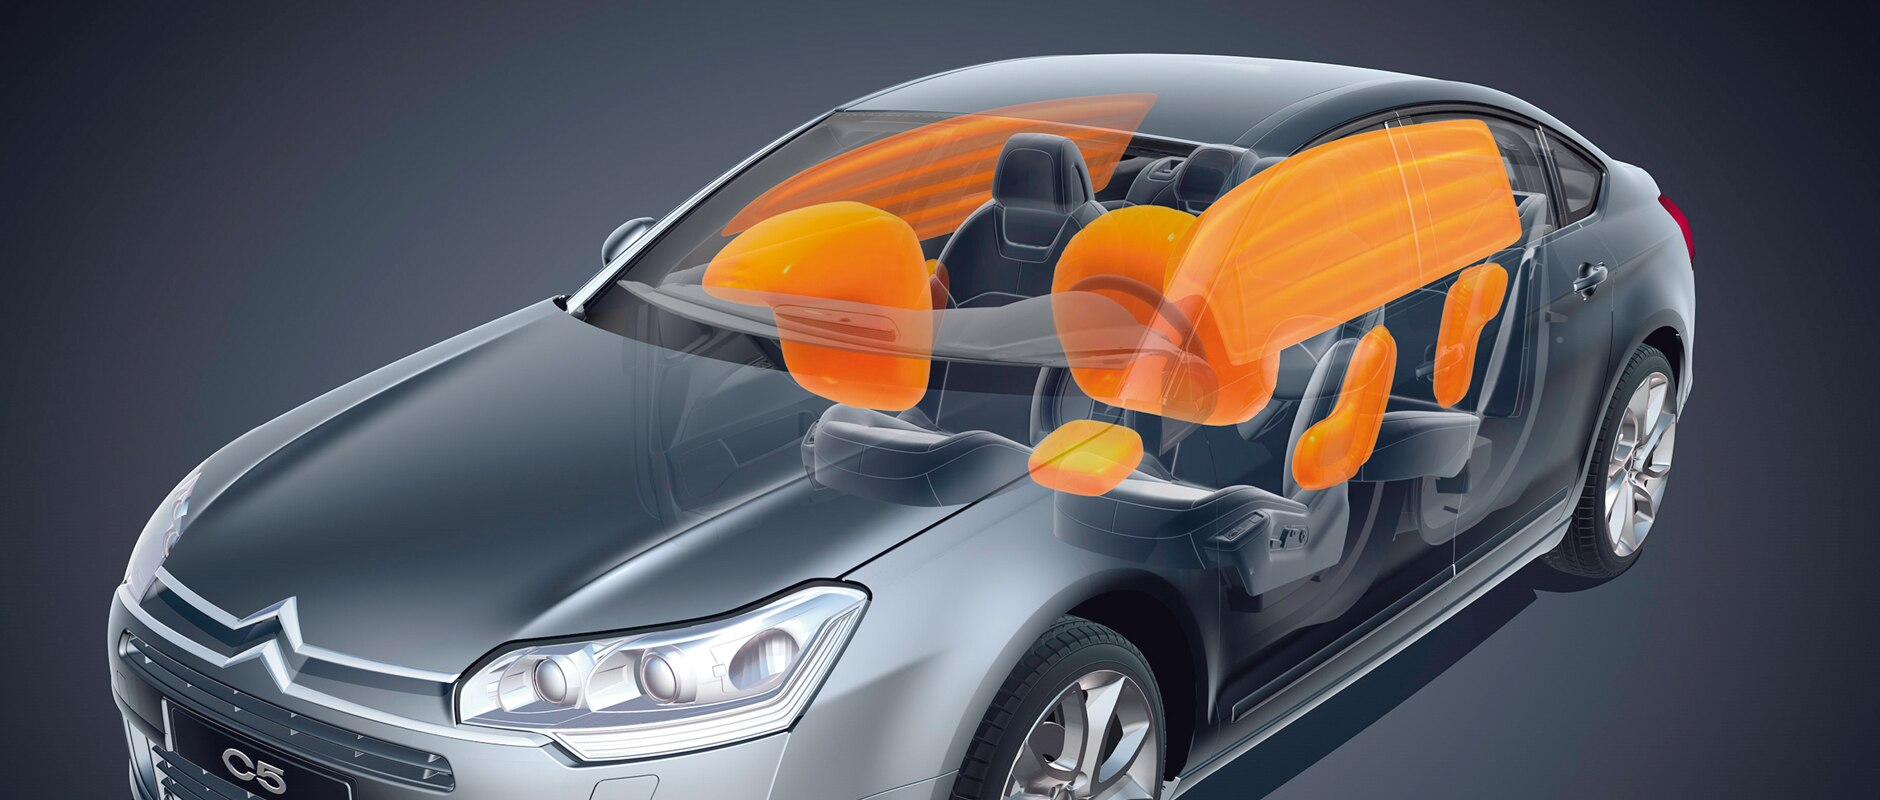 airbags-citroen-C5-berline